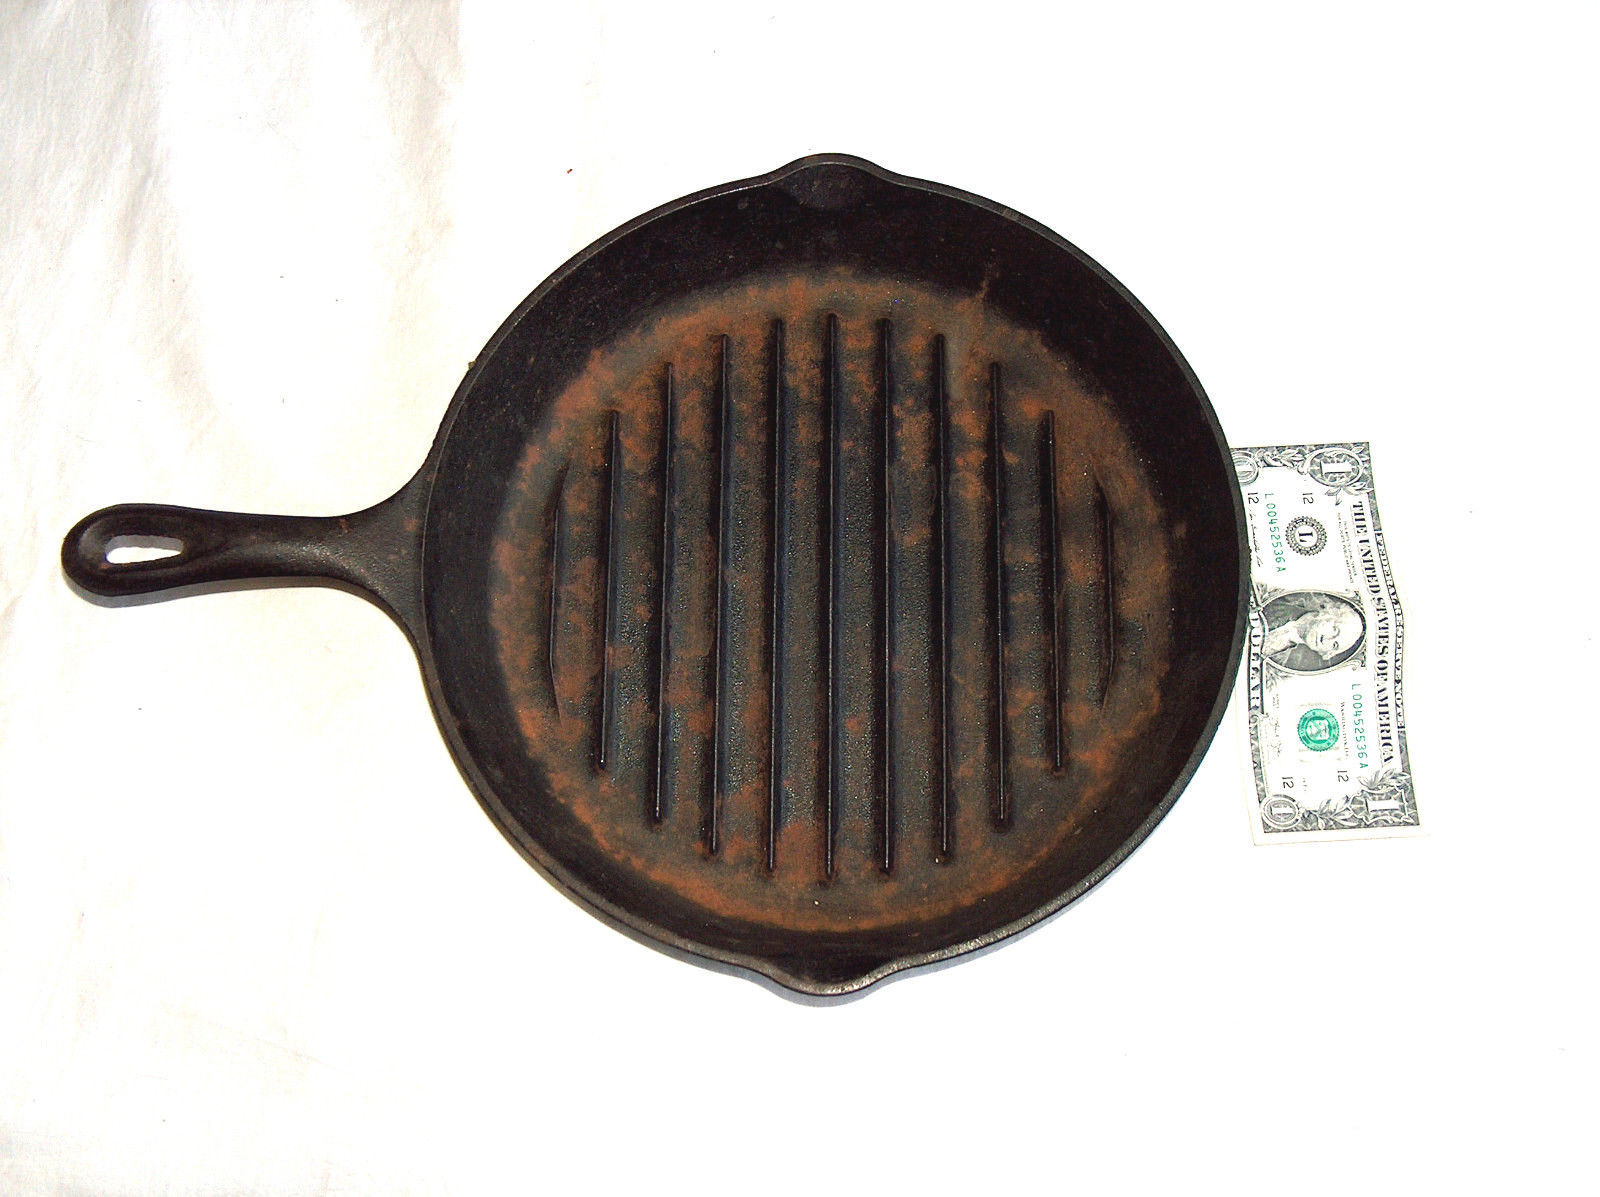 "VINTAGE LODGE CAST IRON 9TB 11 1/4"" GRILL BROILER FRYING COOKING PAN SKILLET USA - $32.18"